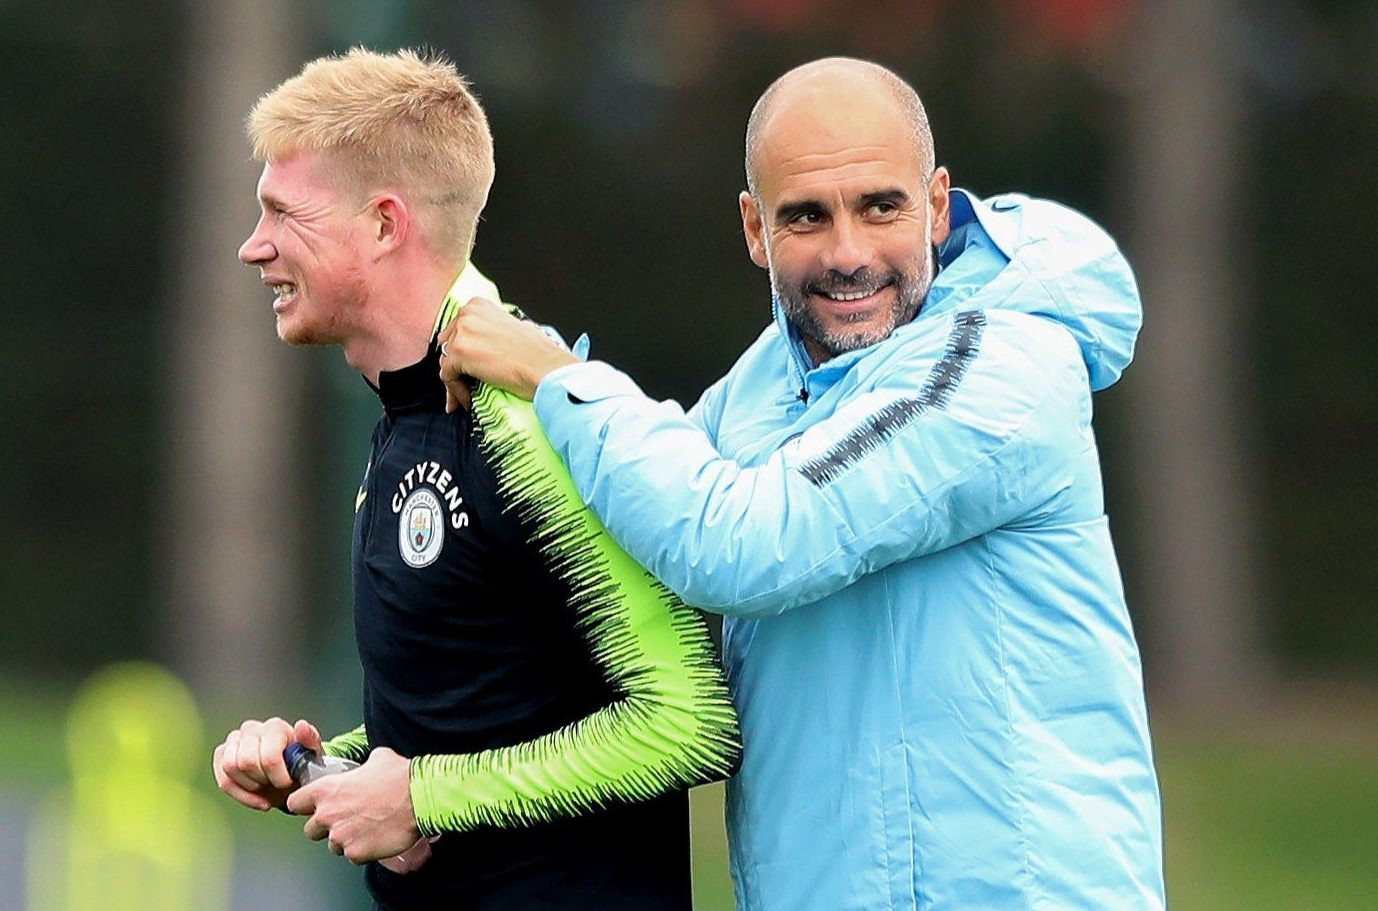 MANCHESTER, ENGLAND - OCTOBER 16: Manchester City manager shares a joke with Kevin de Bruyne during the training session at Manchester City Football Academy on October 16, 2018 in Manchester, England. (Photo by Matt McNulty - Manchester City/Man City via Getty Images)